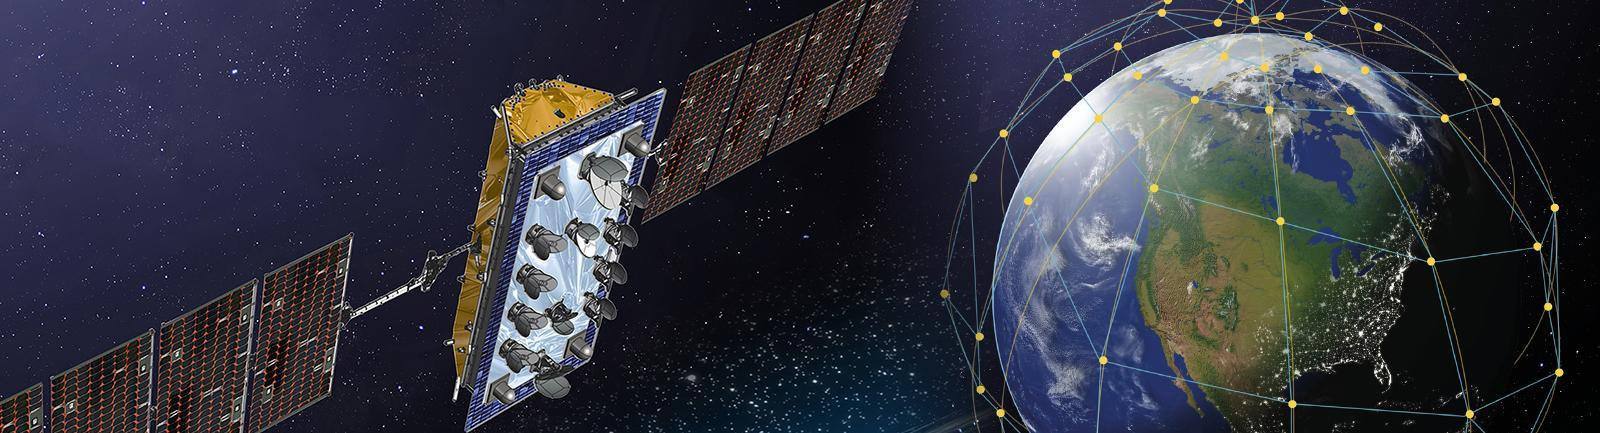 CopaSAT Selects LeoSat for LEO Connectivity Network (Photo: Business Wire)